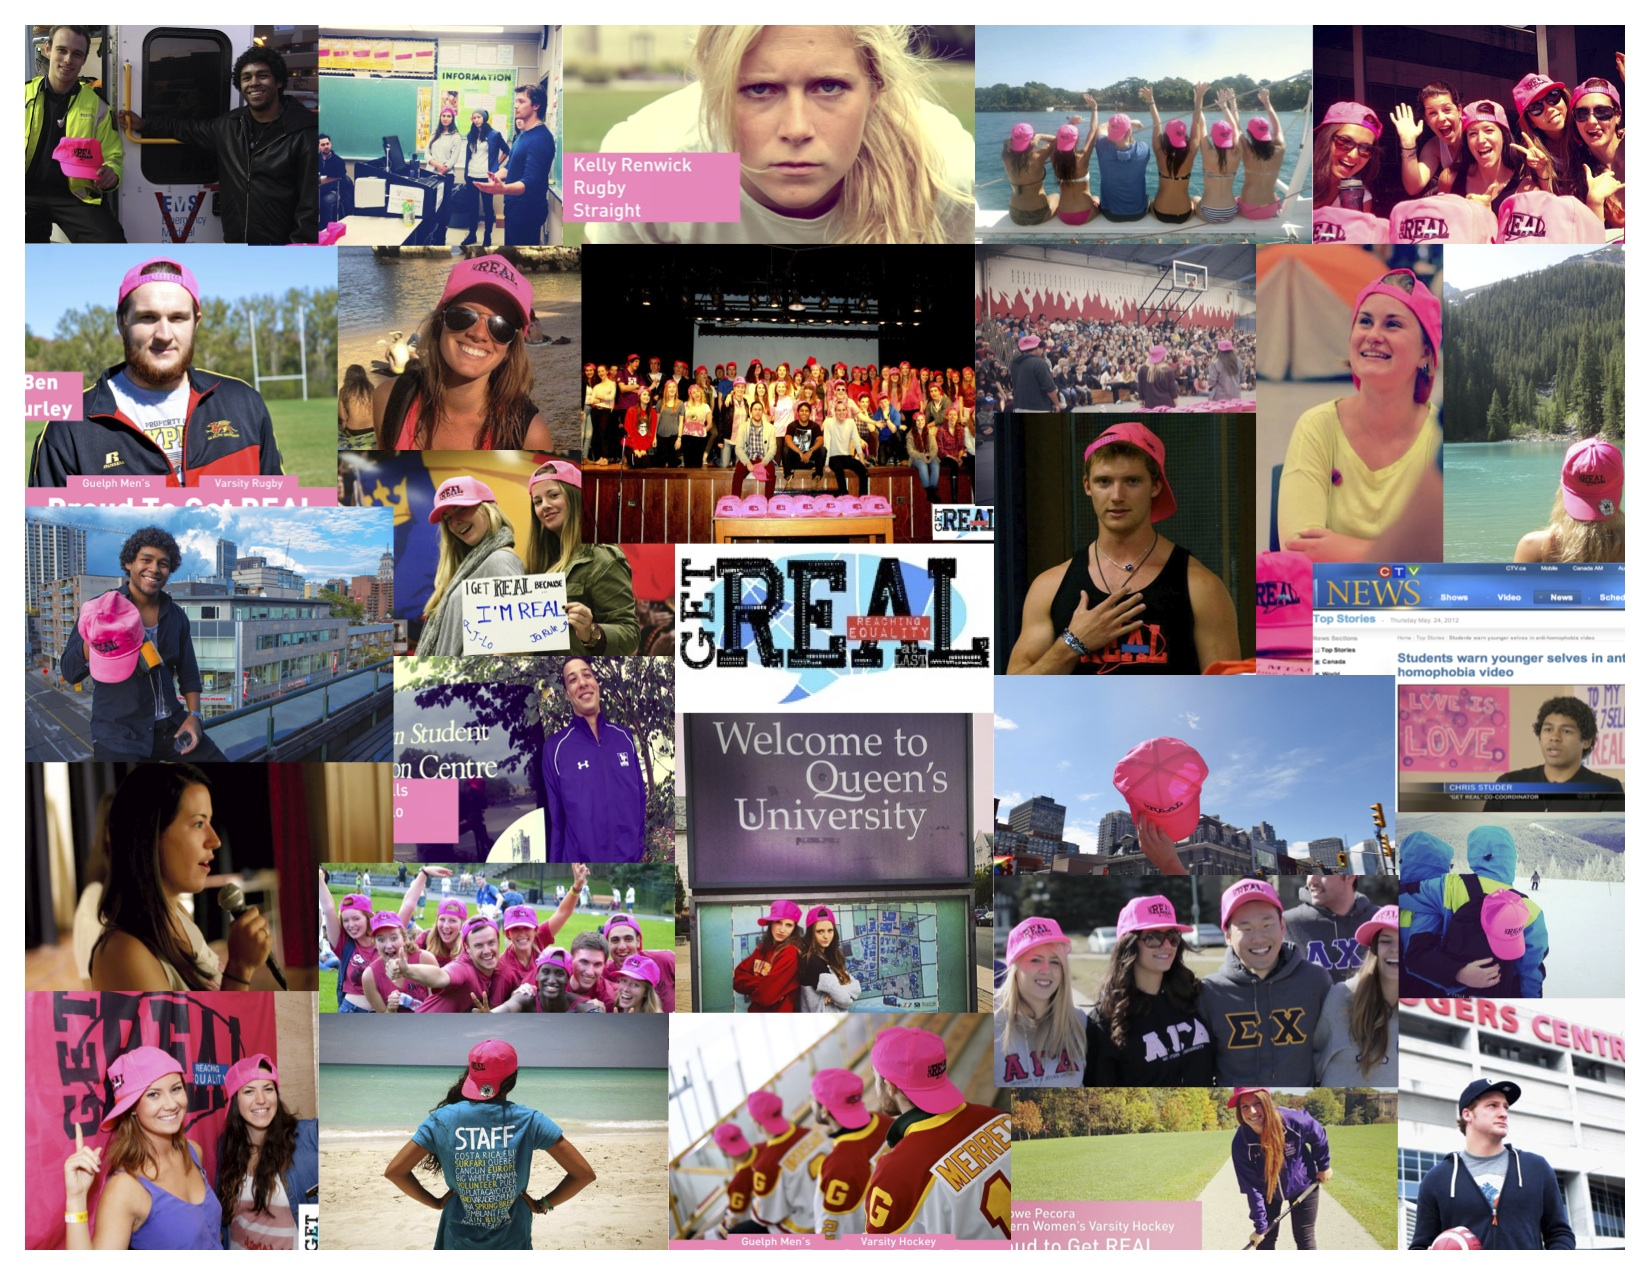 A Youth Movement Against Homophobia: Get REAL